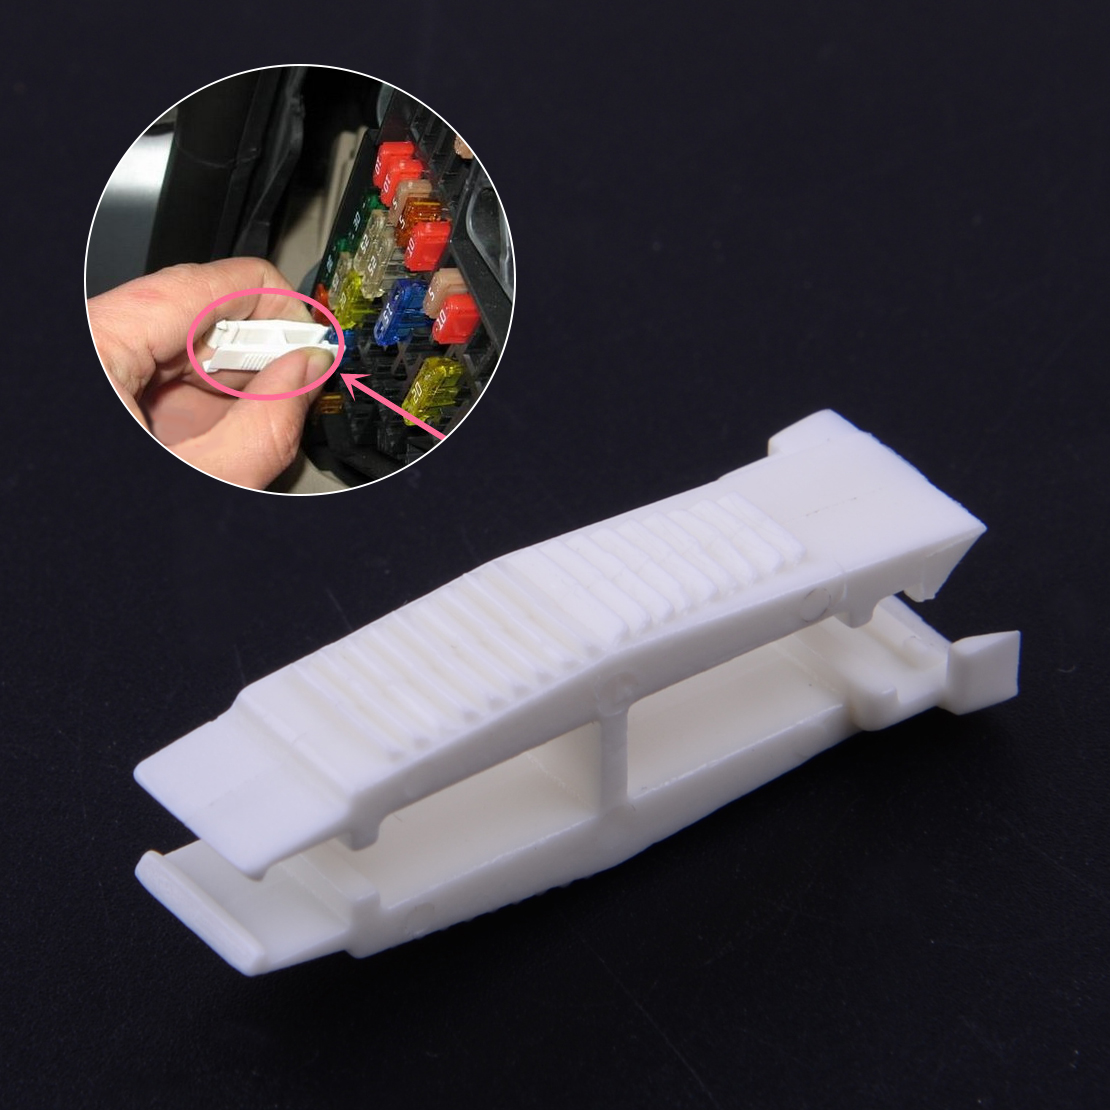 CITALL Fuse Relay Puller Removal Assembly Tool White Fit For VW Passat Golf Audi Skoda 8D0941802